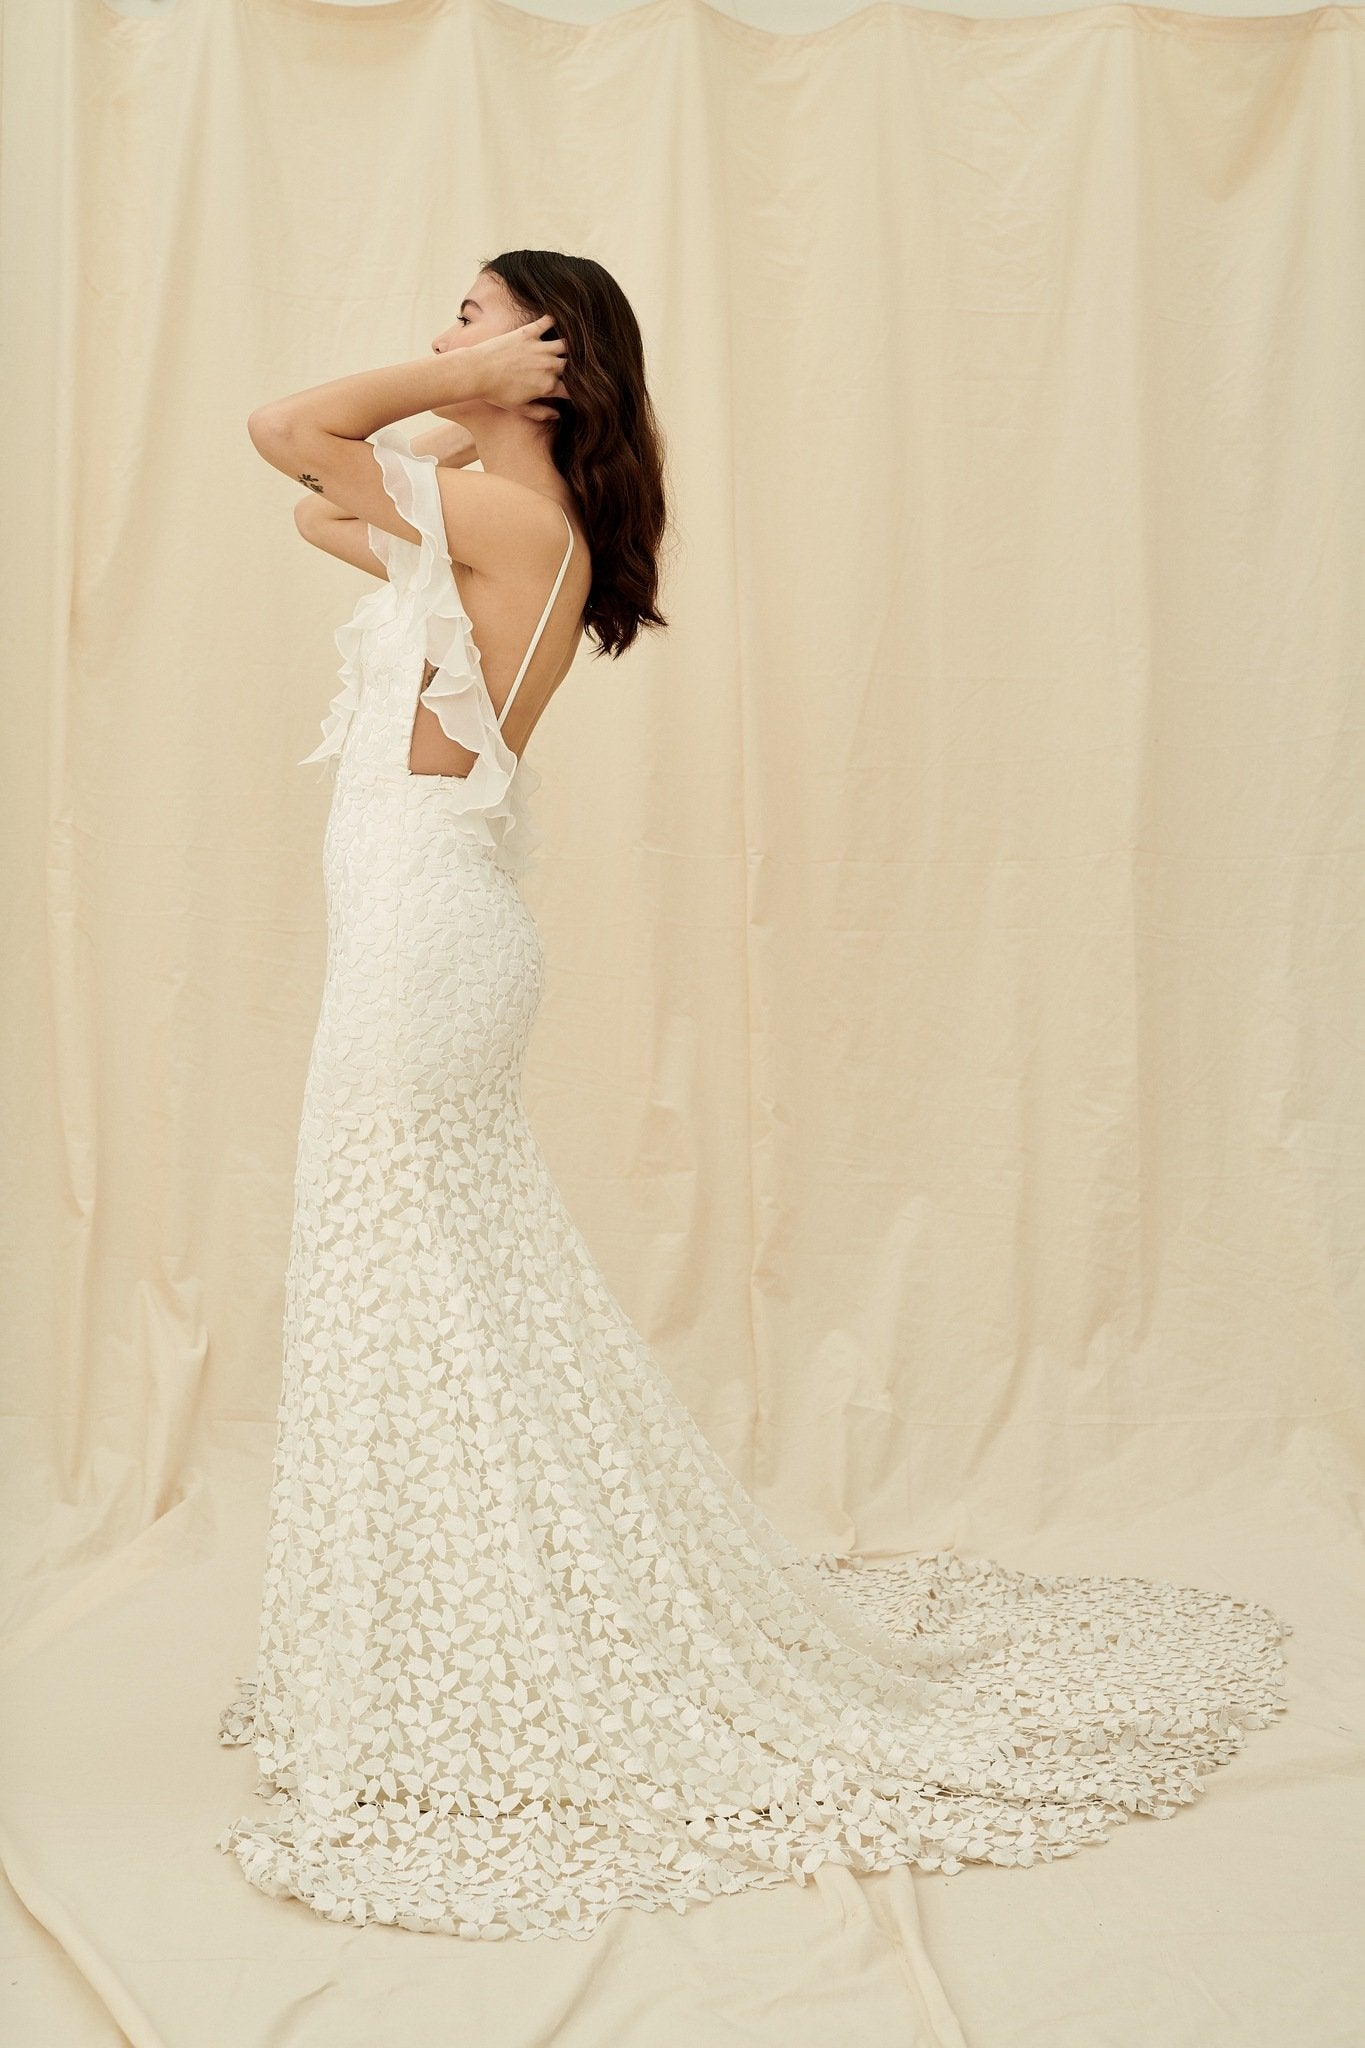 Lace mermaid gown with off-the-shoulder ruffles and a dramatic long train